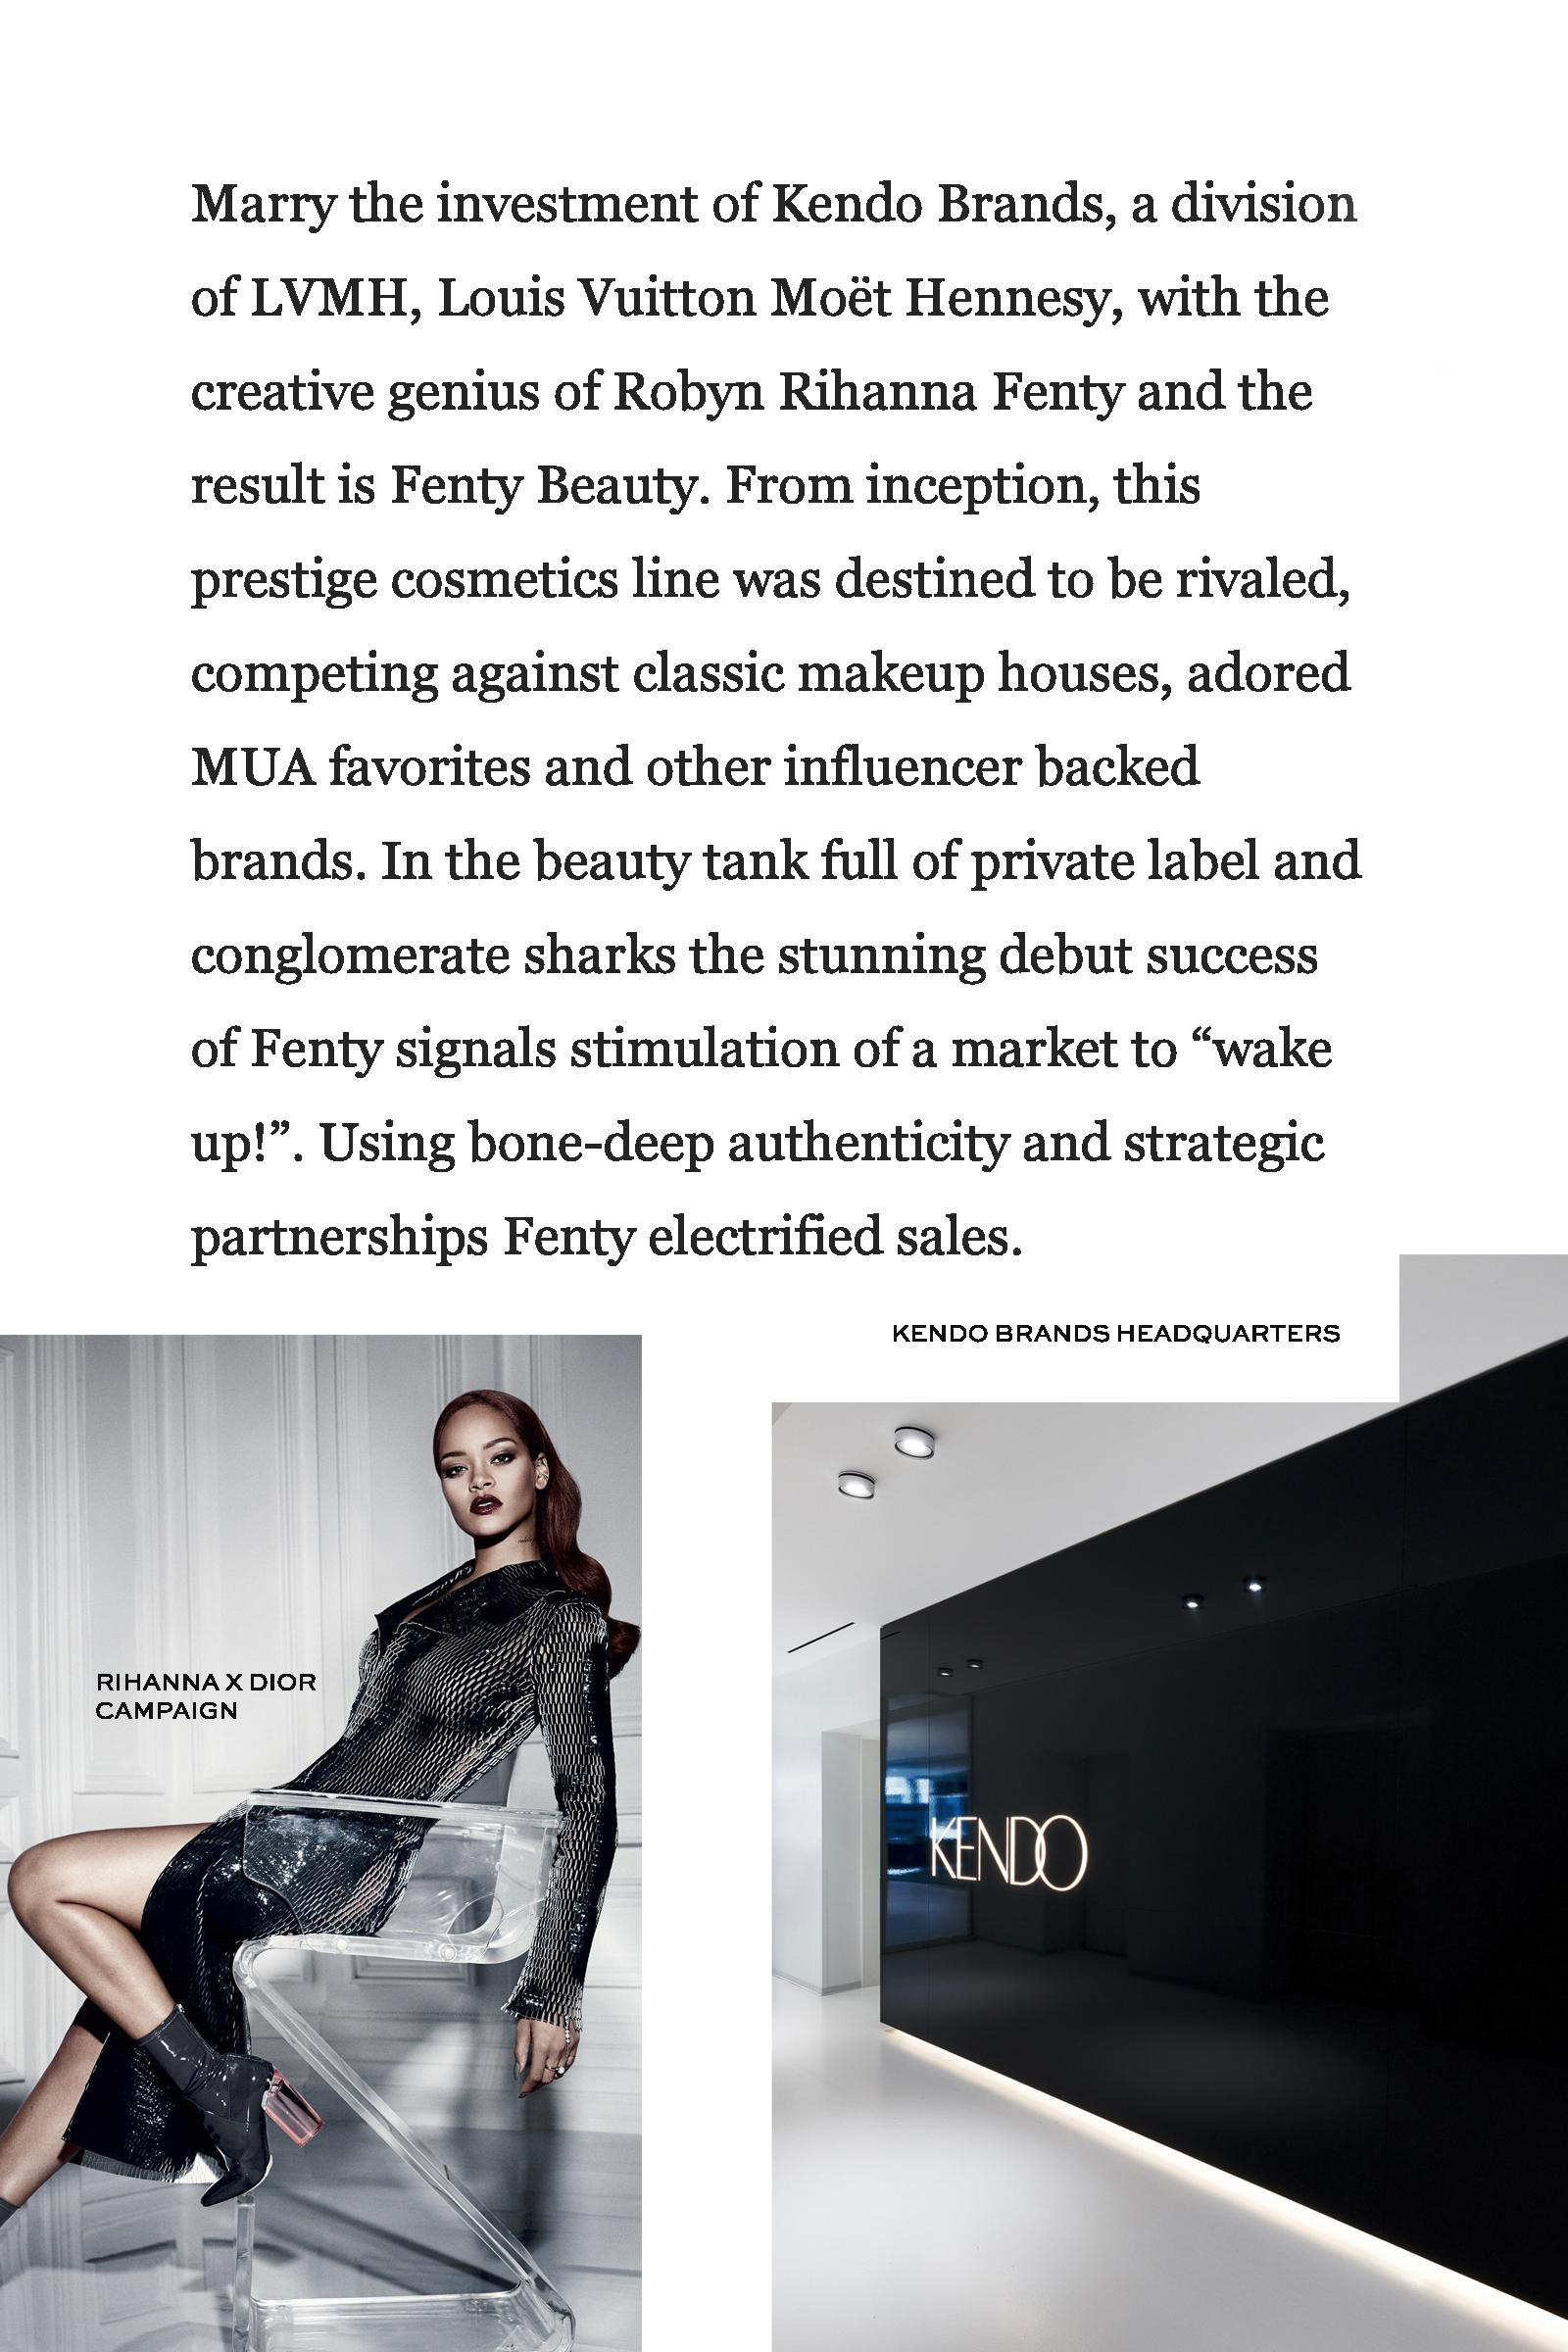 Stunna,-Fenty-Beauty-s-Performance-Is-the-Jolt-the-Beauty-Industry-Needed-page-002